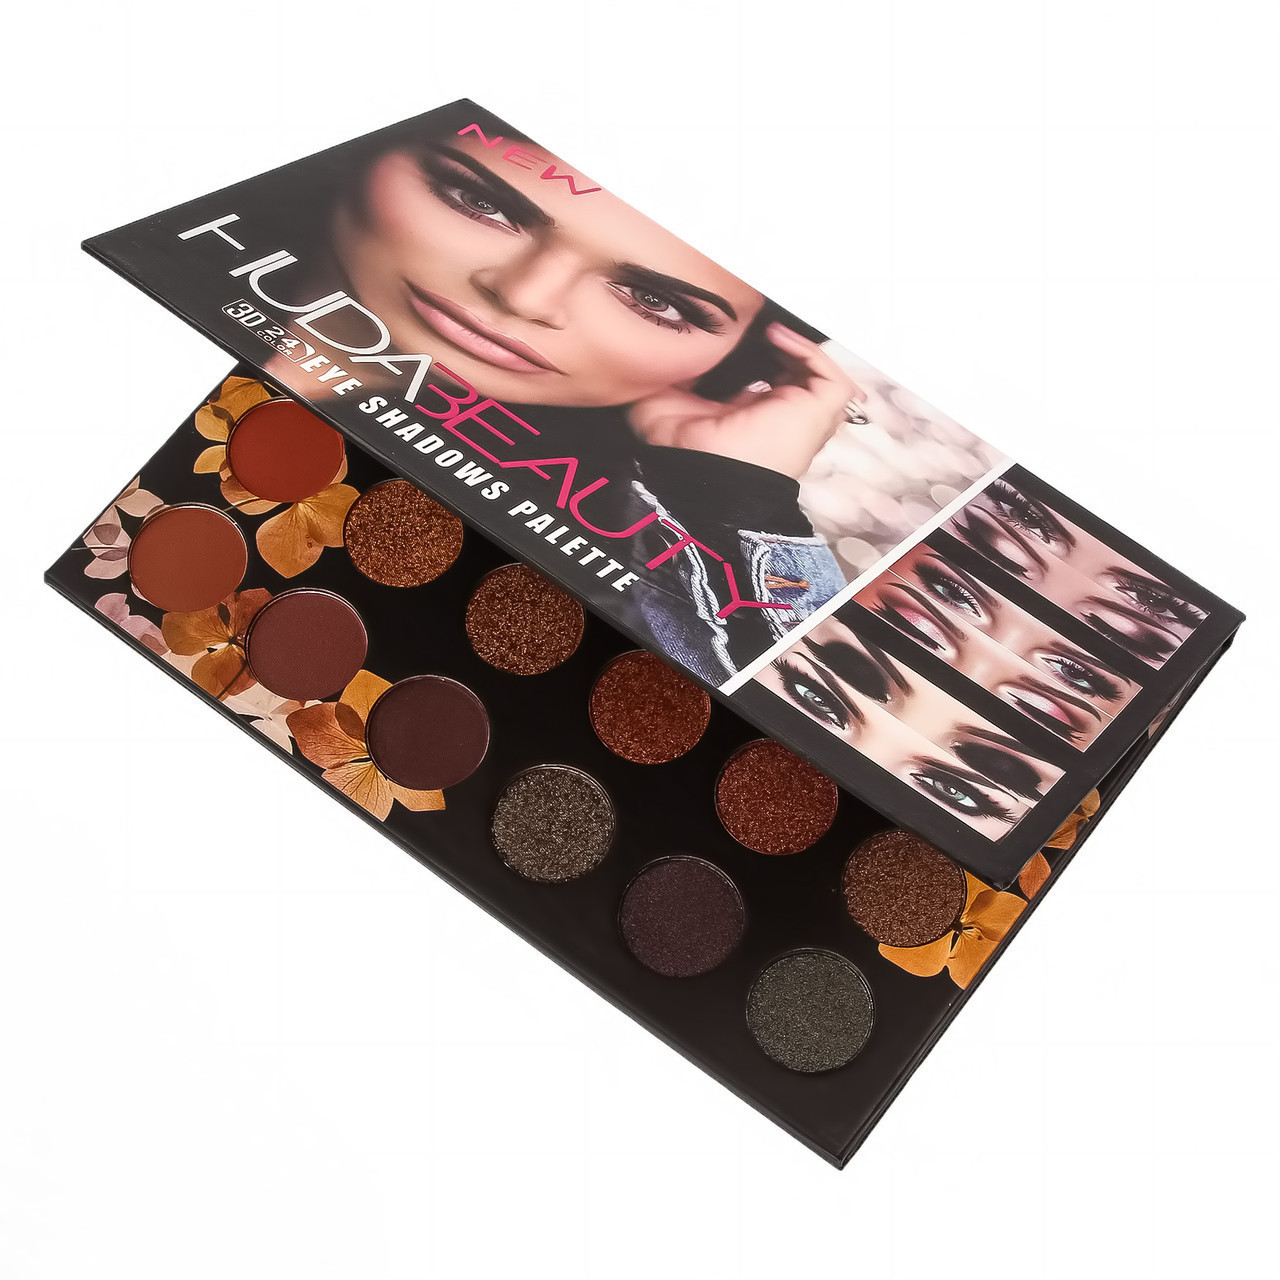 Палитра теней HUDA BEAUTY Eye Shadows Pallet 3D 24 в 1